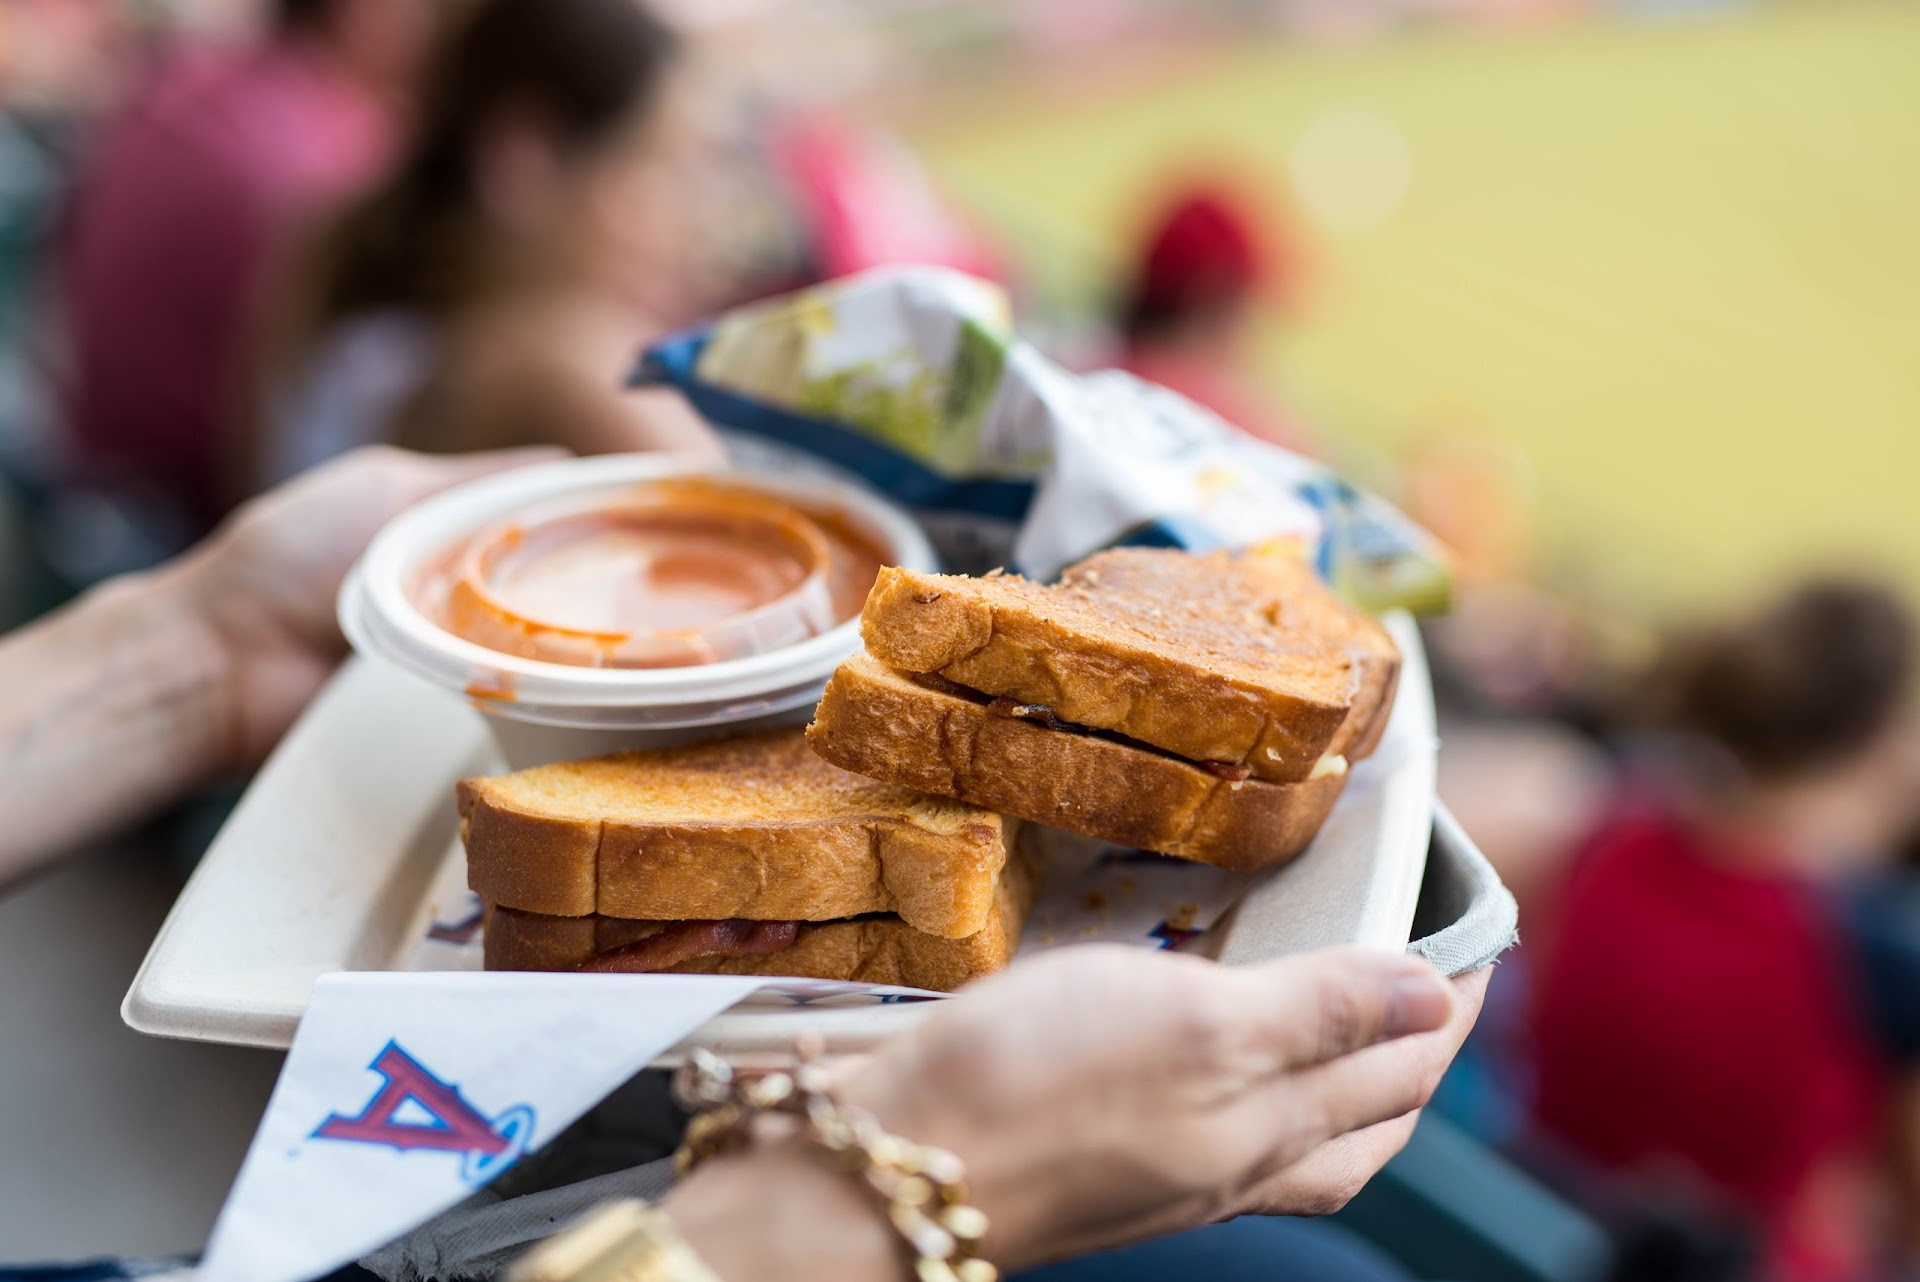 the big cheese, review, anaheim angels, food blogger, stadium blog, grilled cheese restaurant, bacon, tailgating food